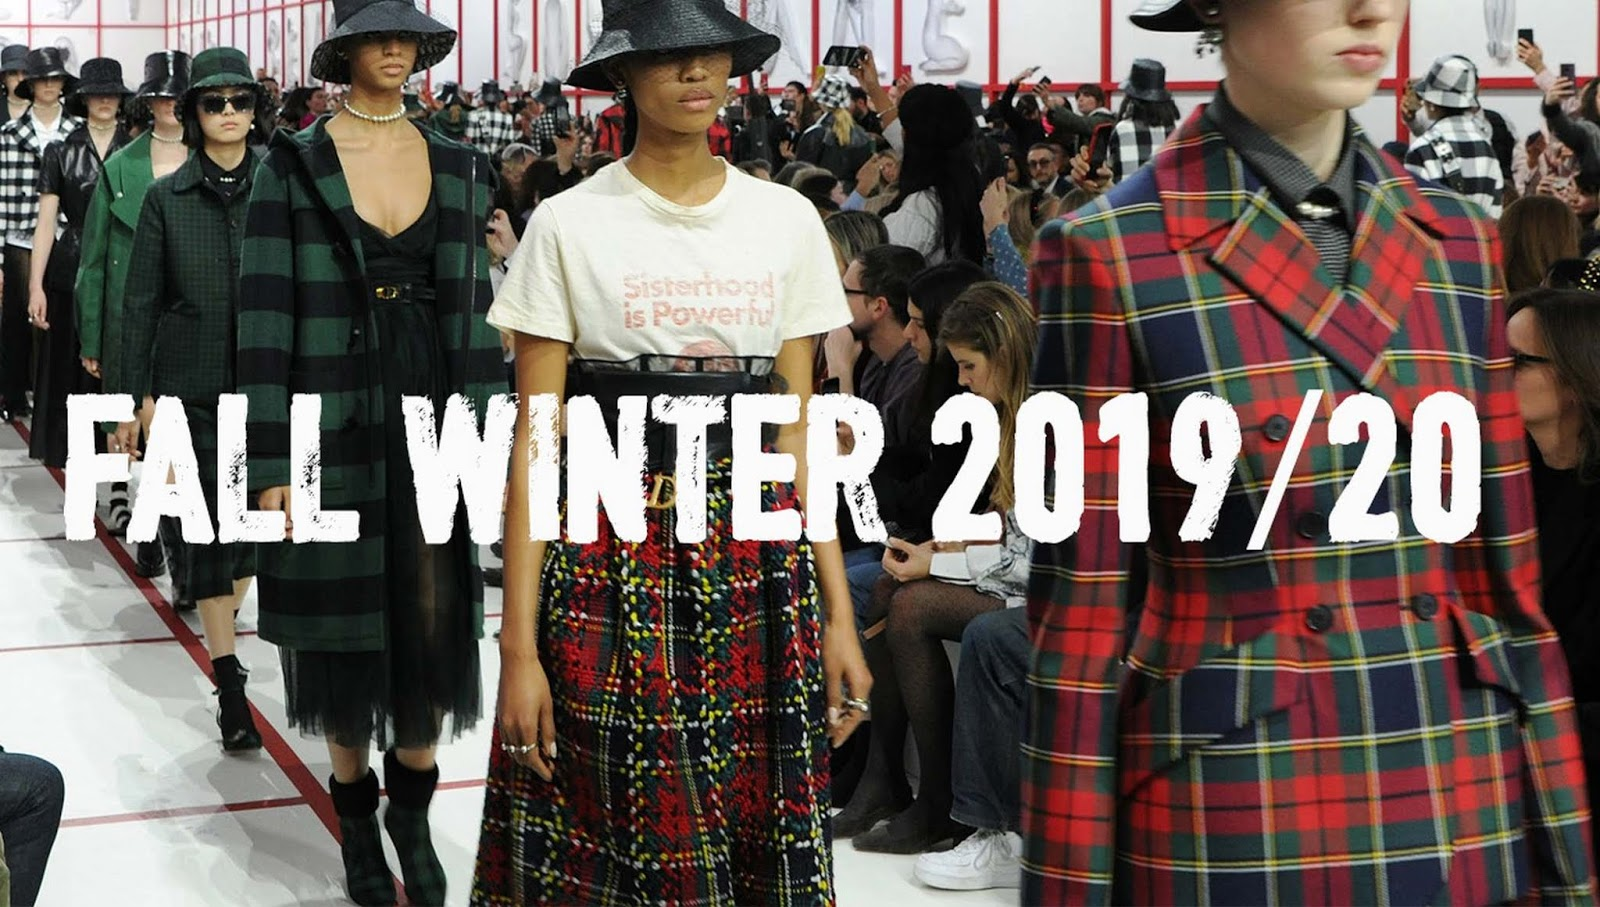 Eniwhere Fashion - trend autunno inverno 2019/20